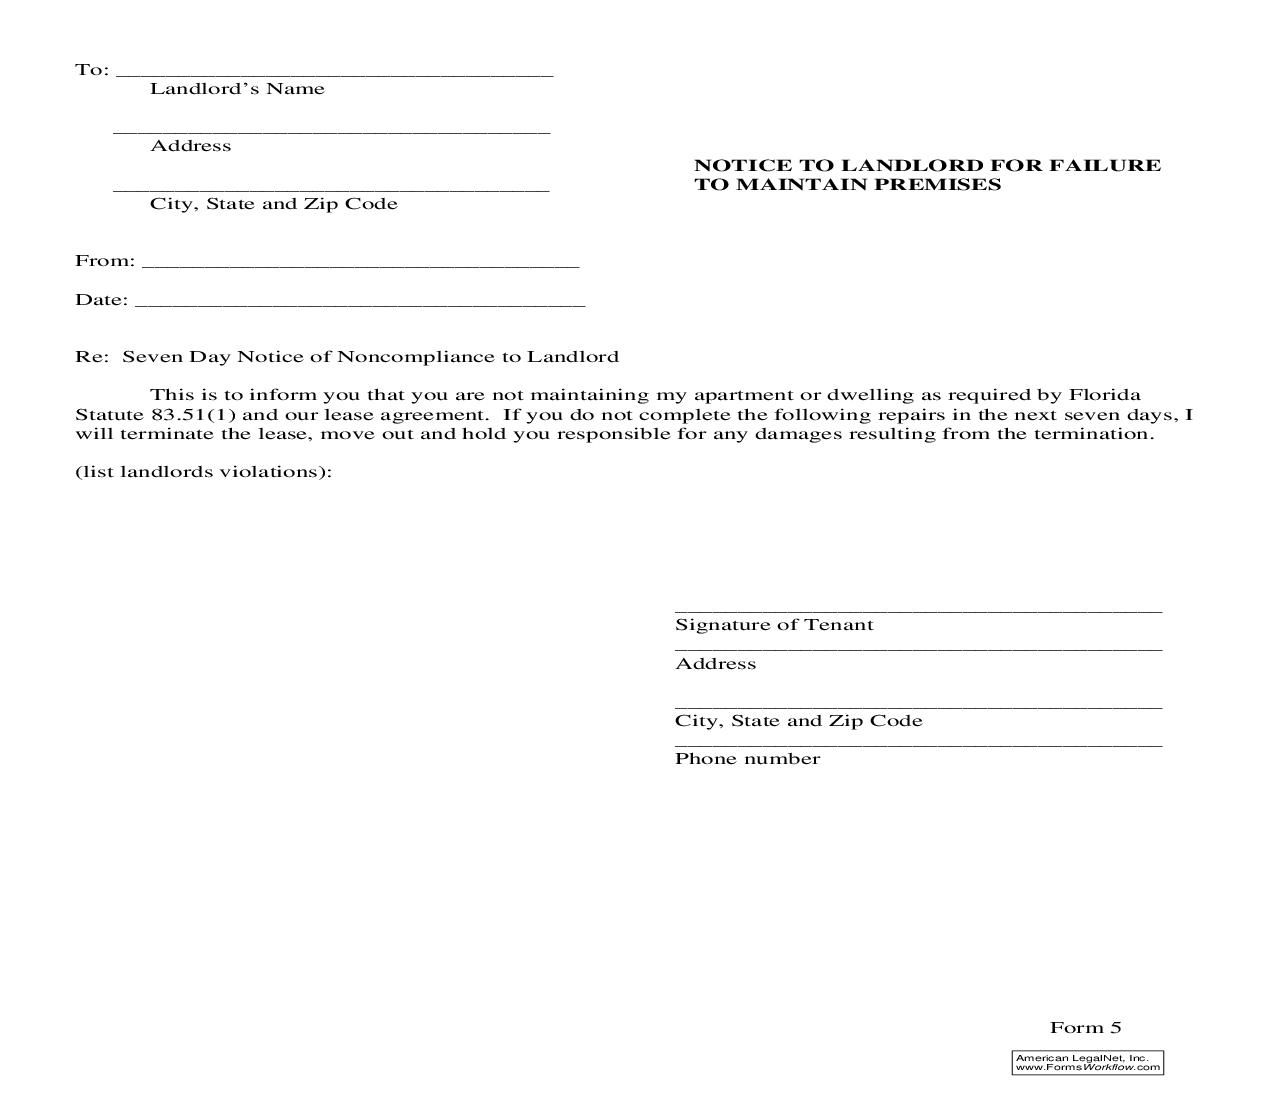 Notice To Landlord For Failure To Maintain Premises {5} | Pdf Fpdf Doc Docx | Florida